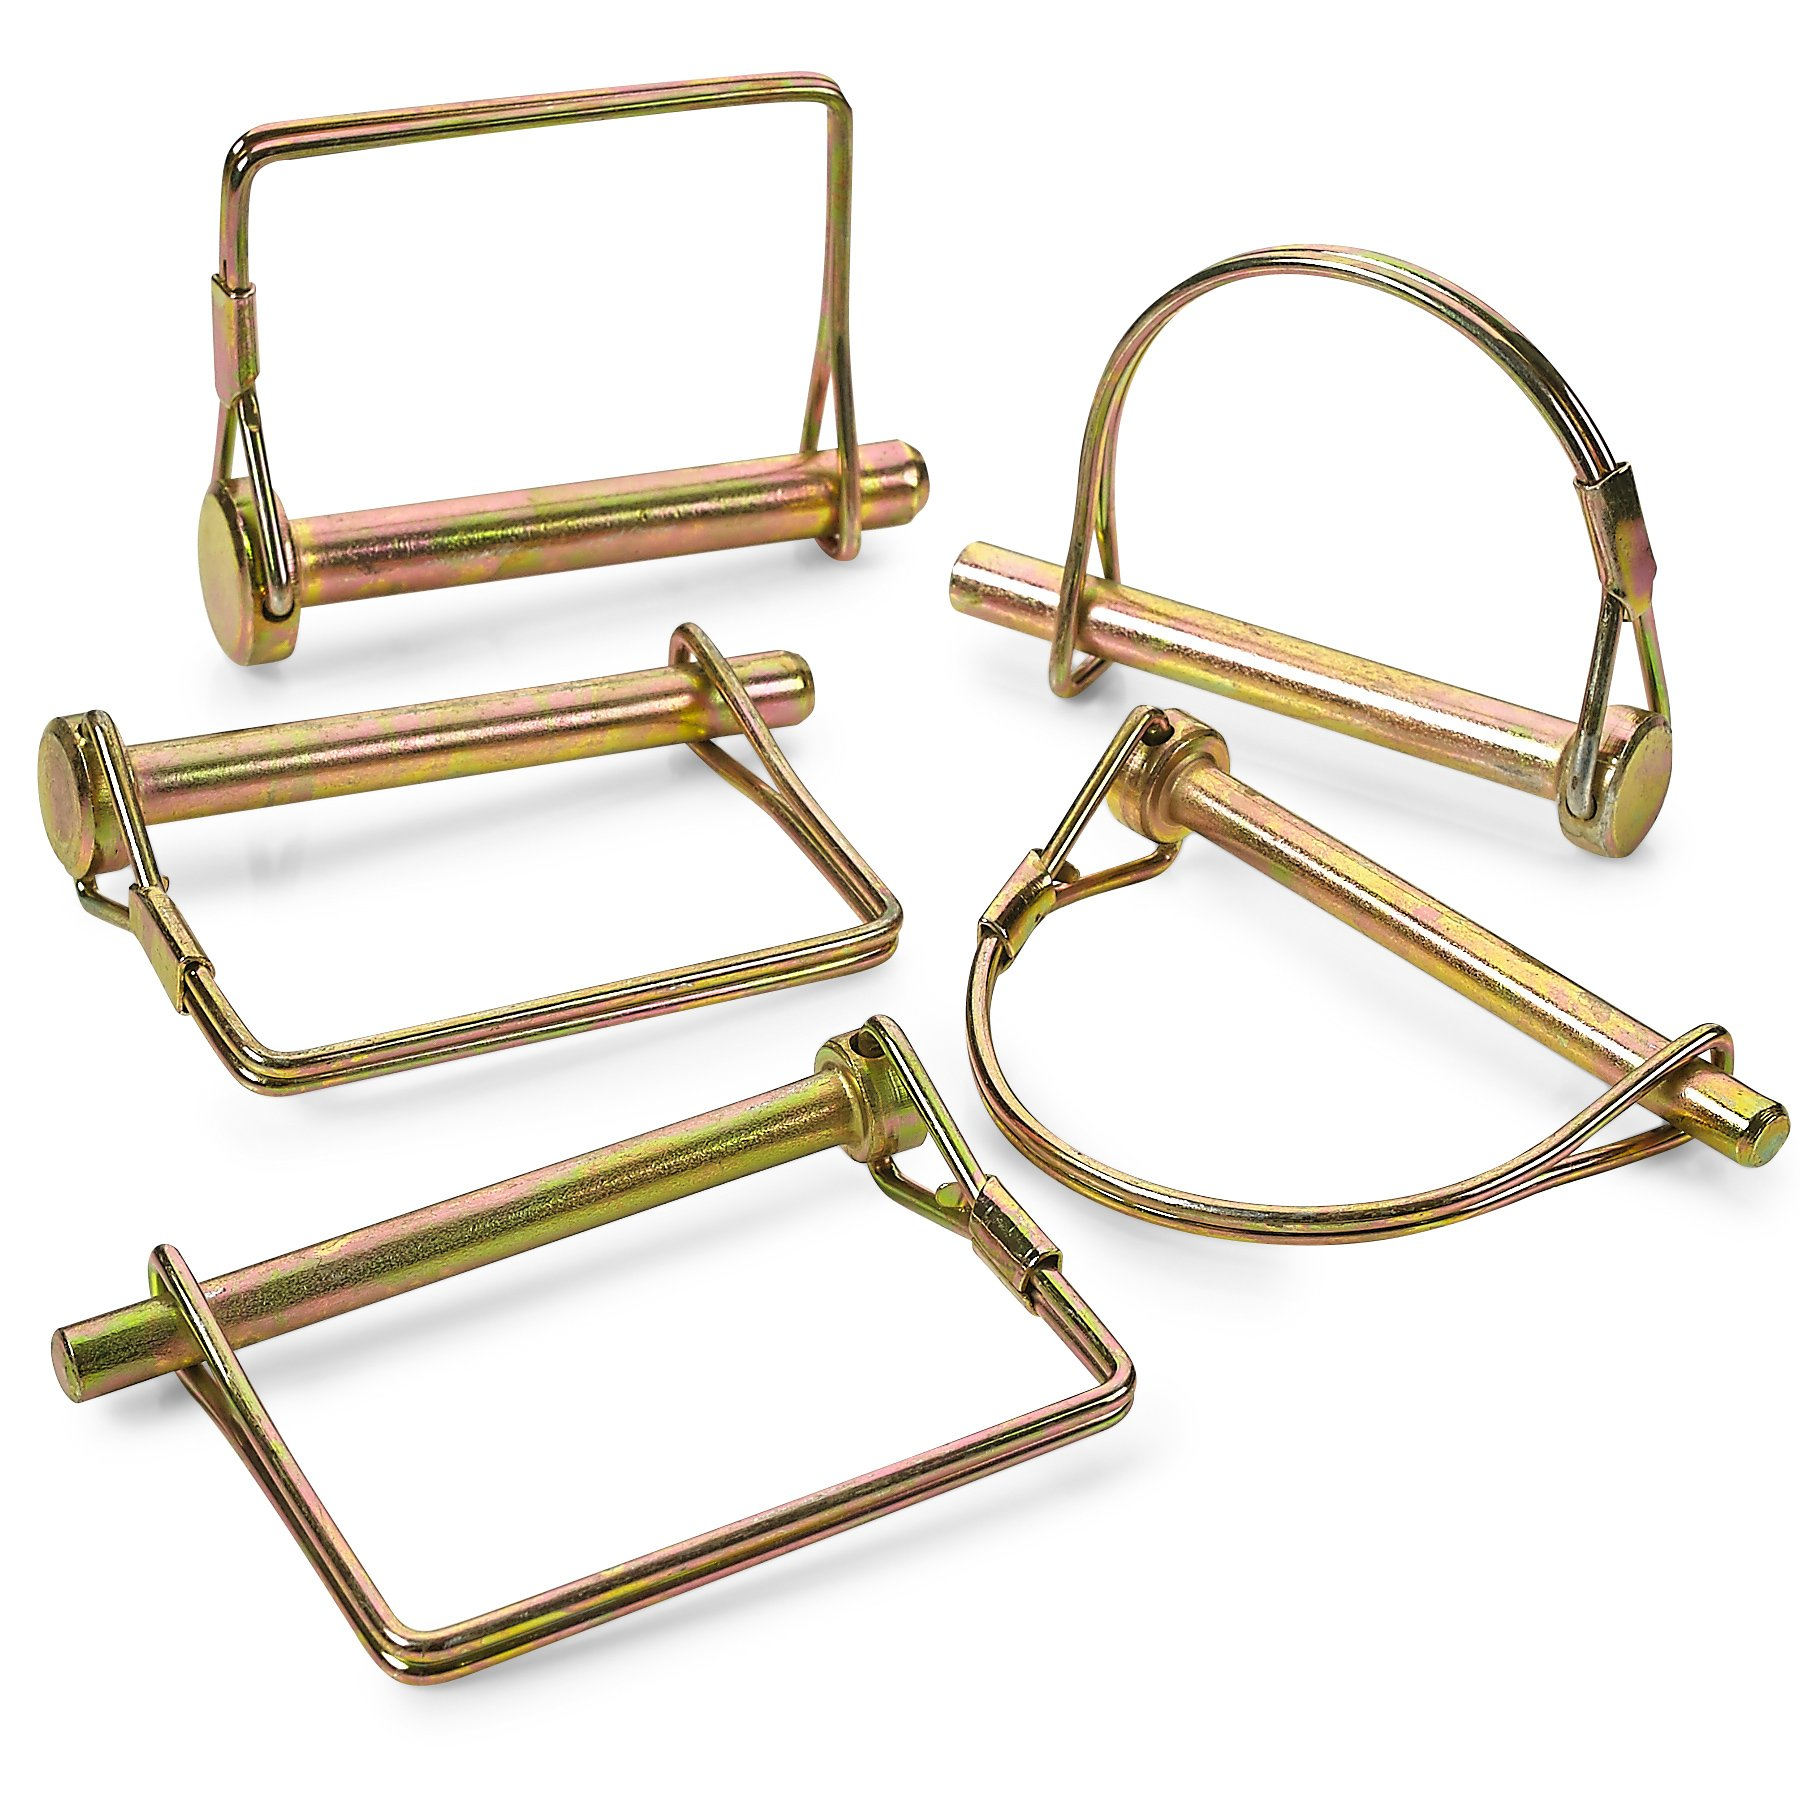 Katzco Pin Assortment Set - for Safety Power Take Off Assemblies, Automotive, Farm, Trailers, Wagons, Hitches, Couplers, Towing, Lawn, and Garden, PTO by Katzco